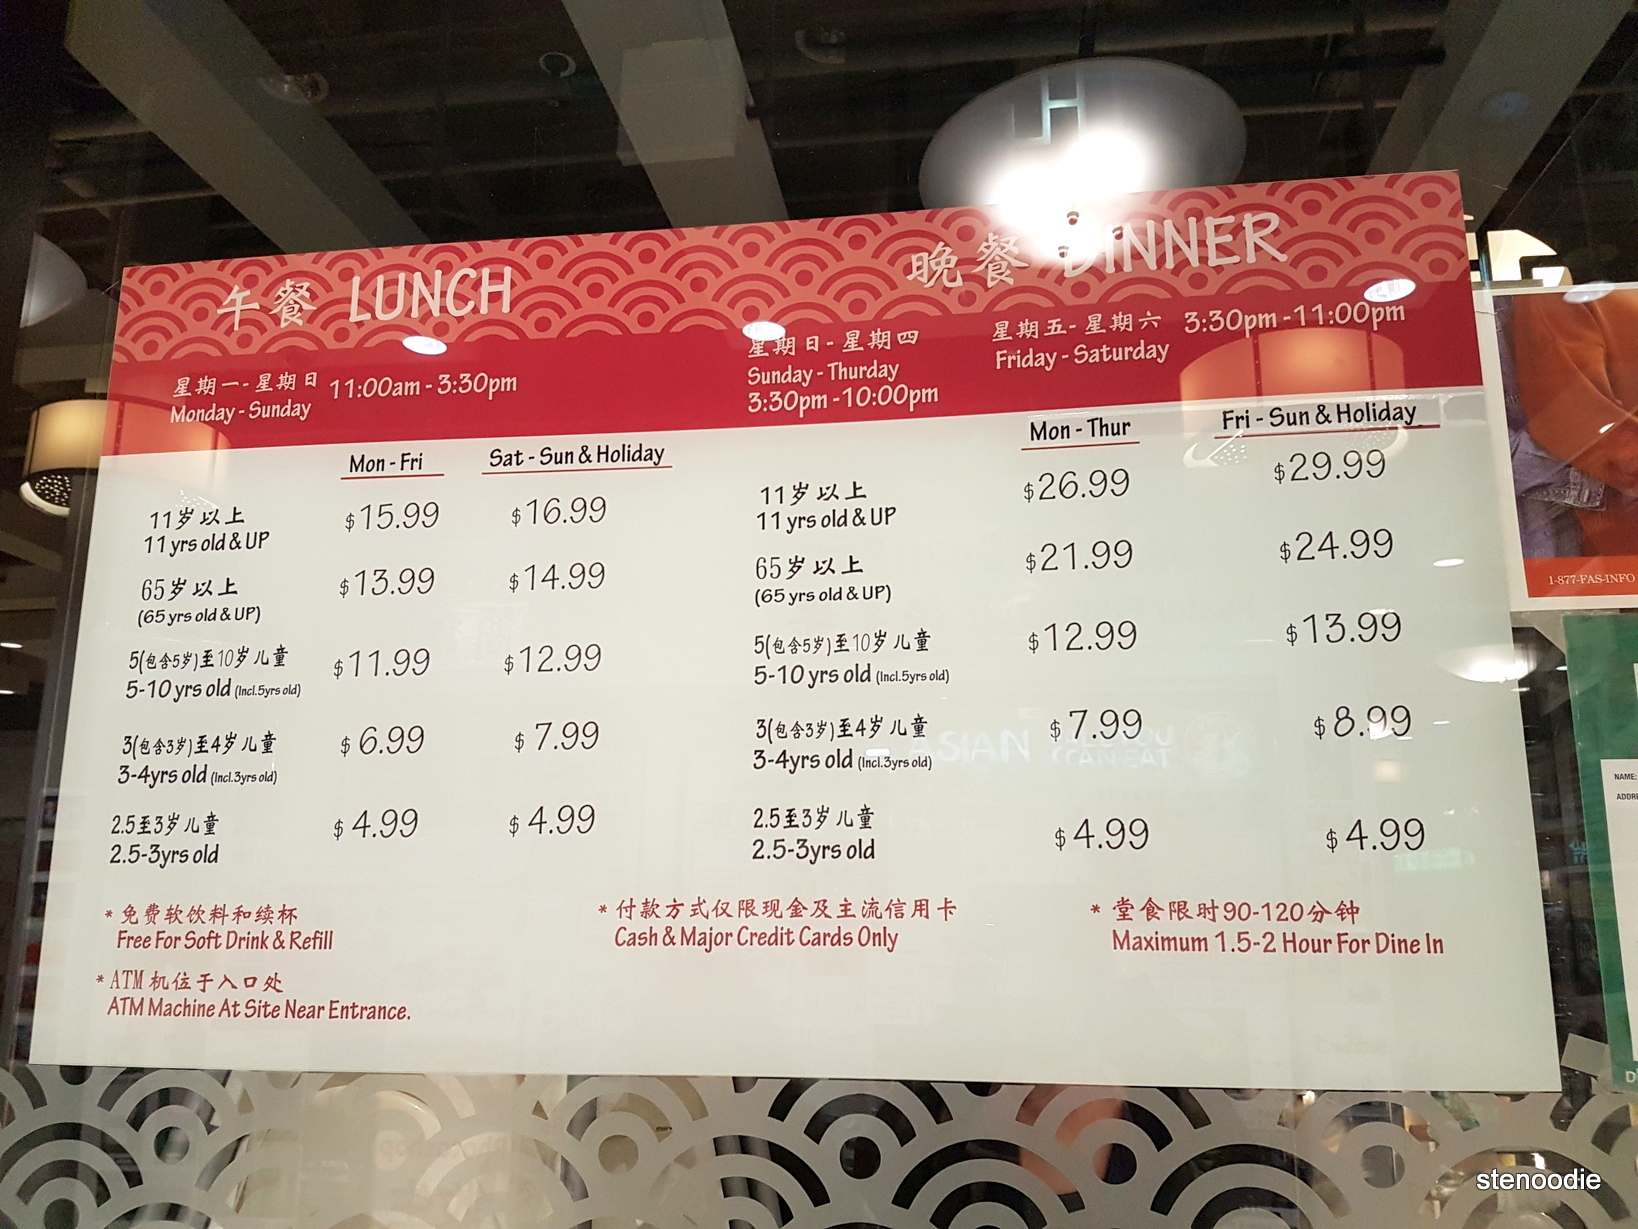 Ichiban Asian All You Can Eat prices